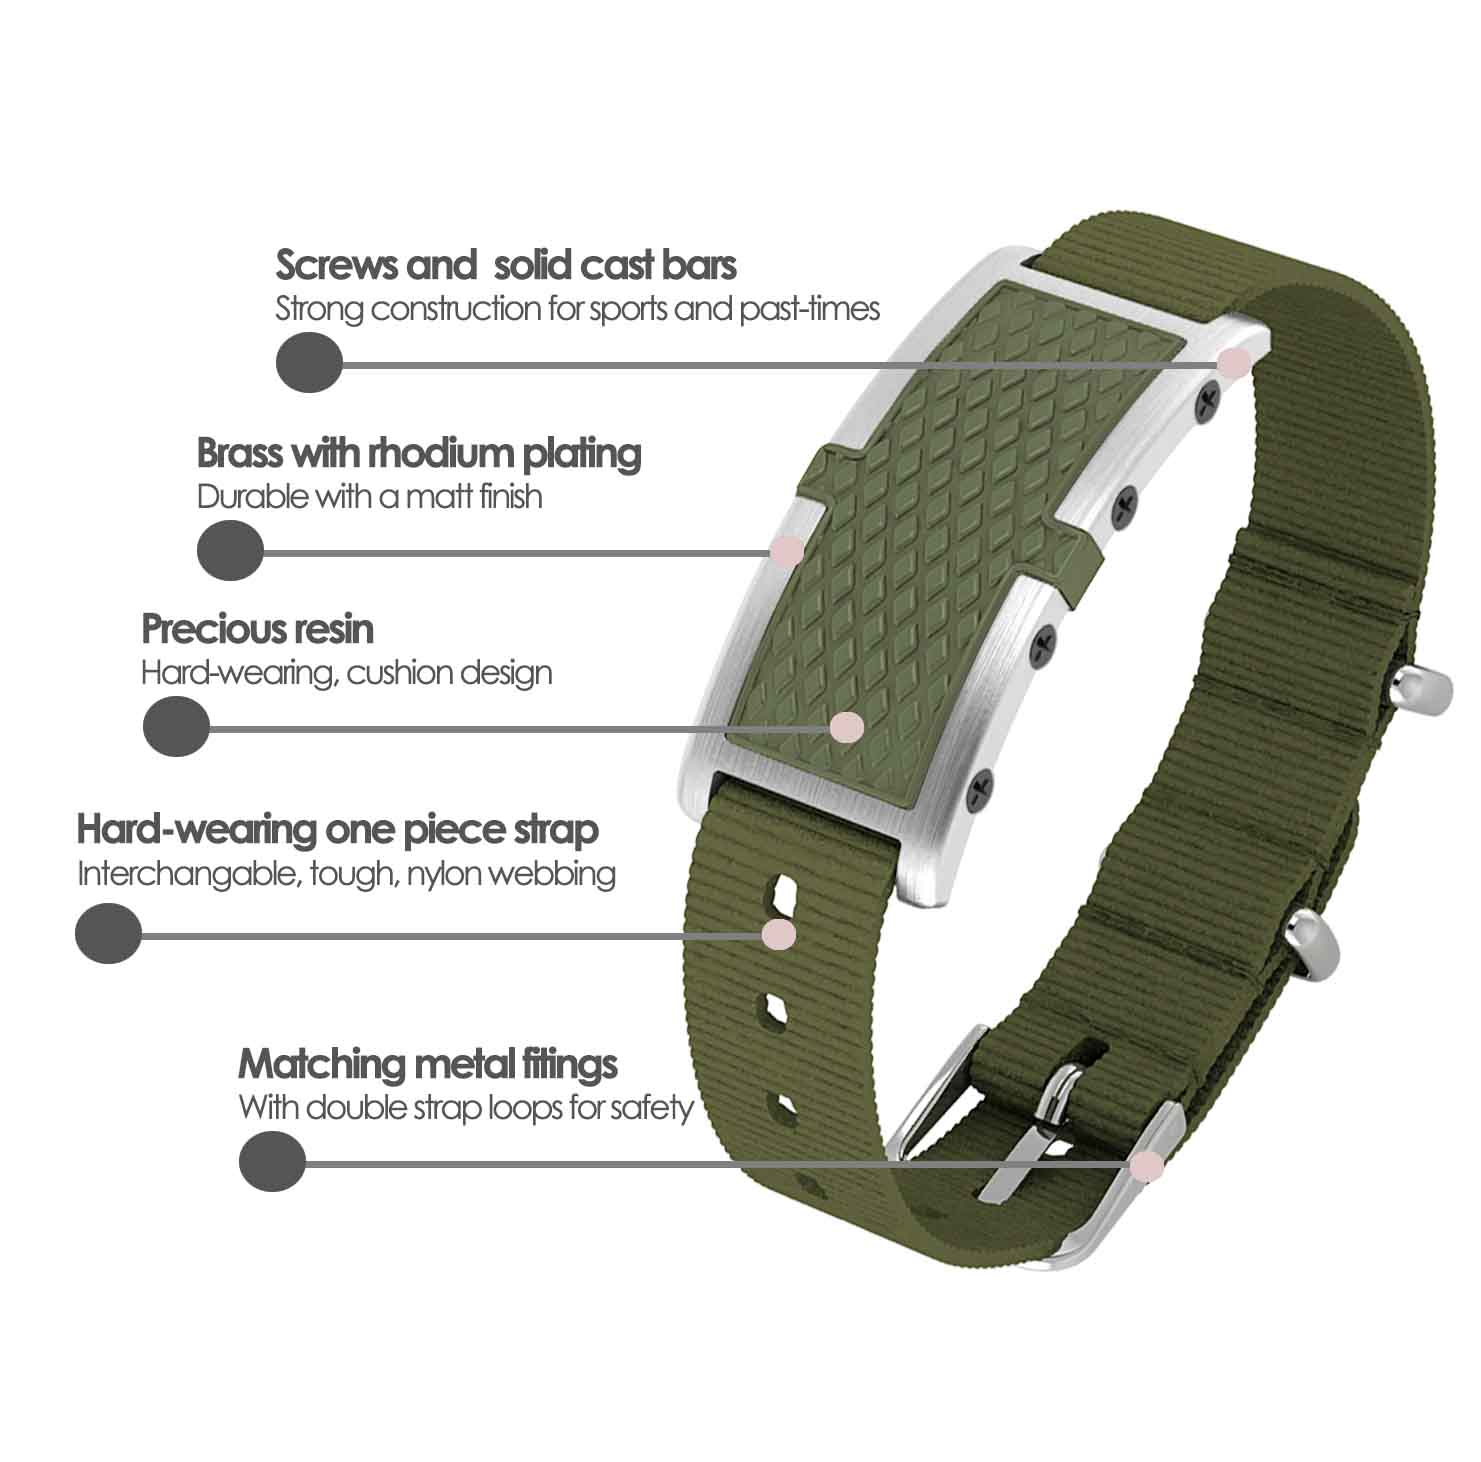 Oxford contactless payment wearable bracelet khaki green and khaki green nylon product details specification